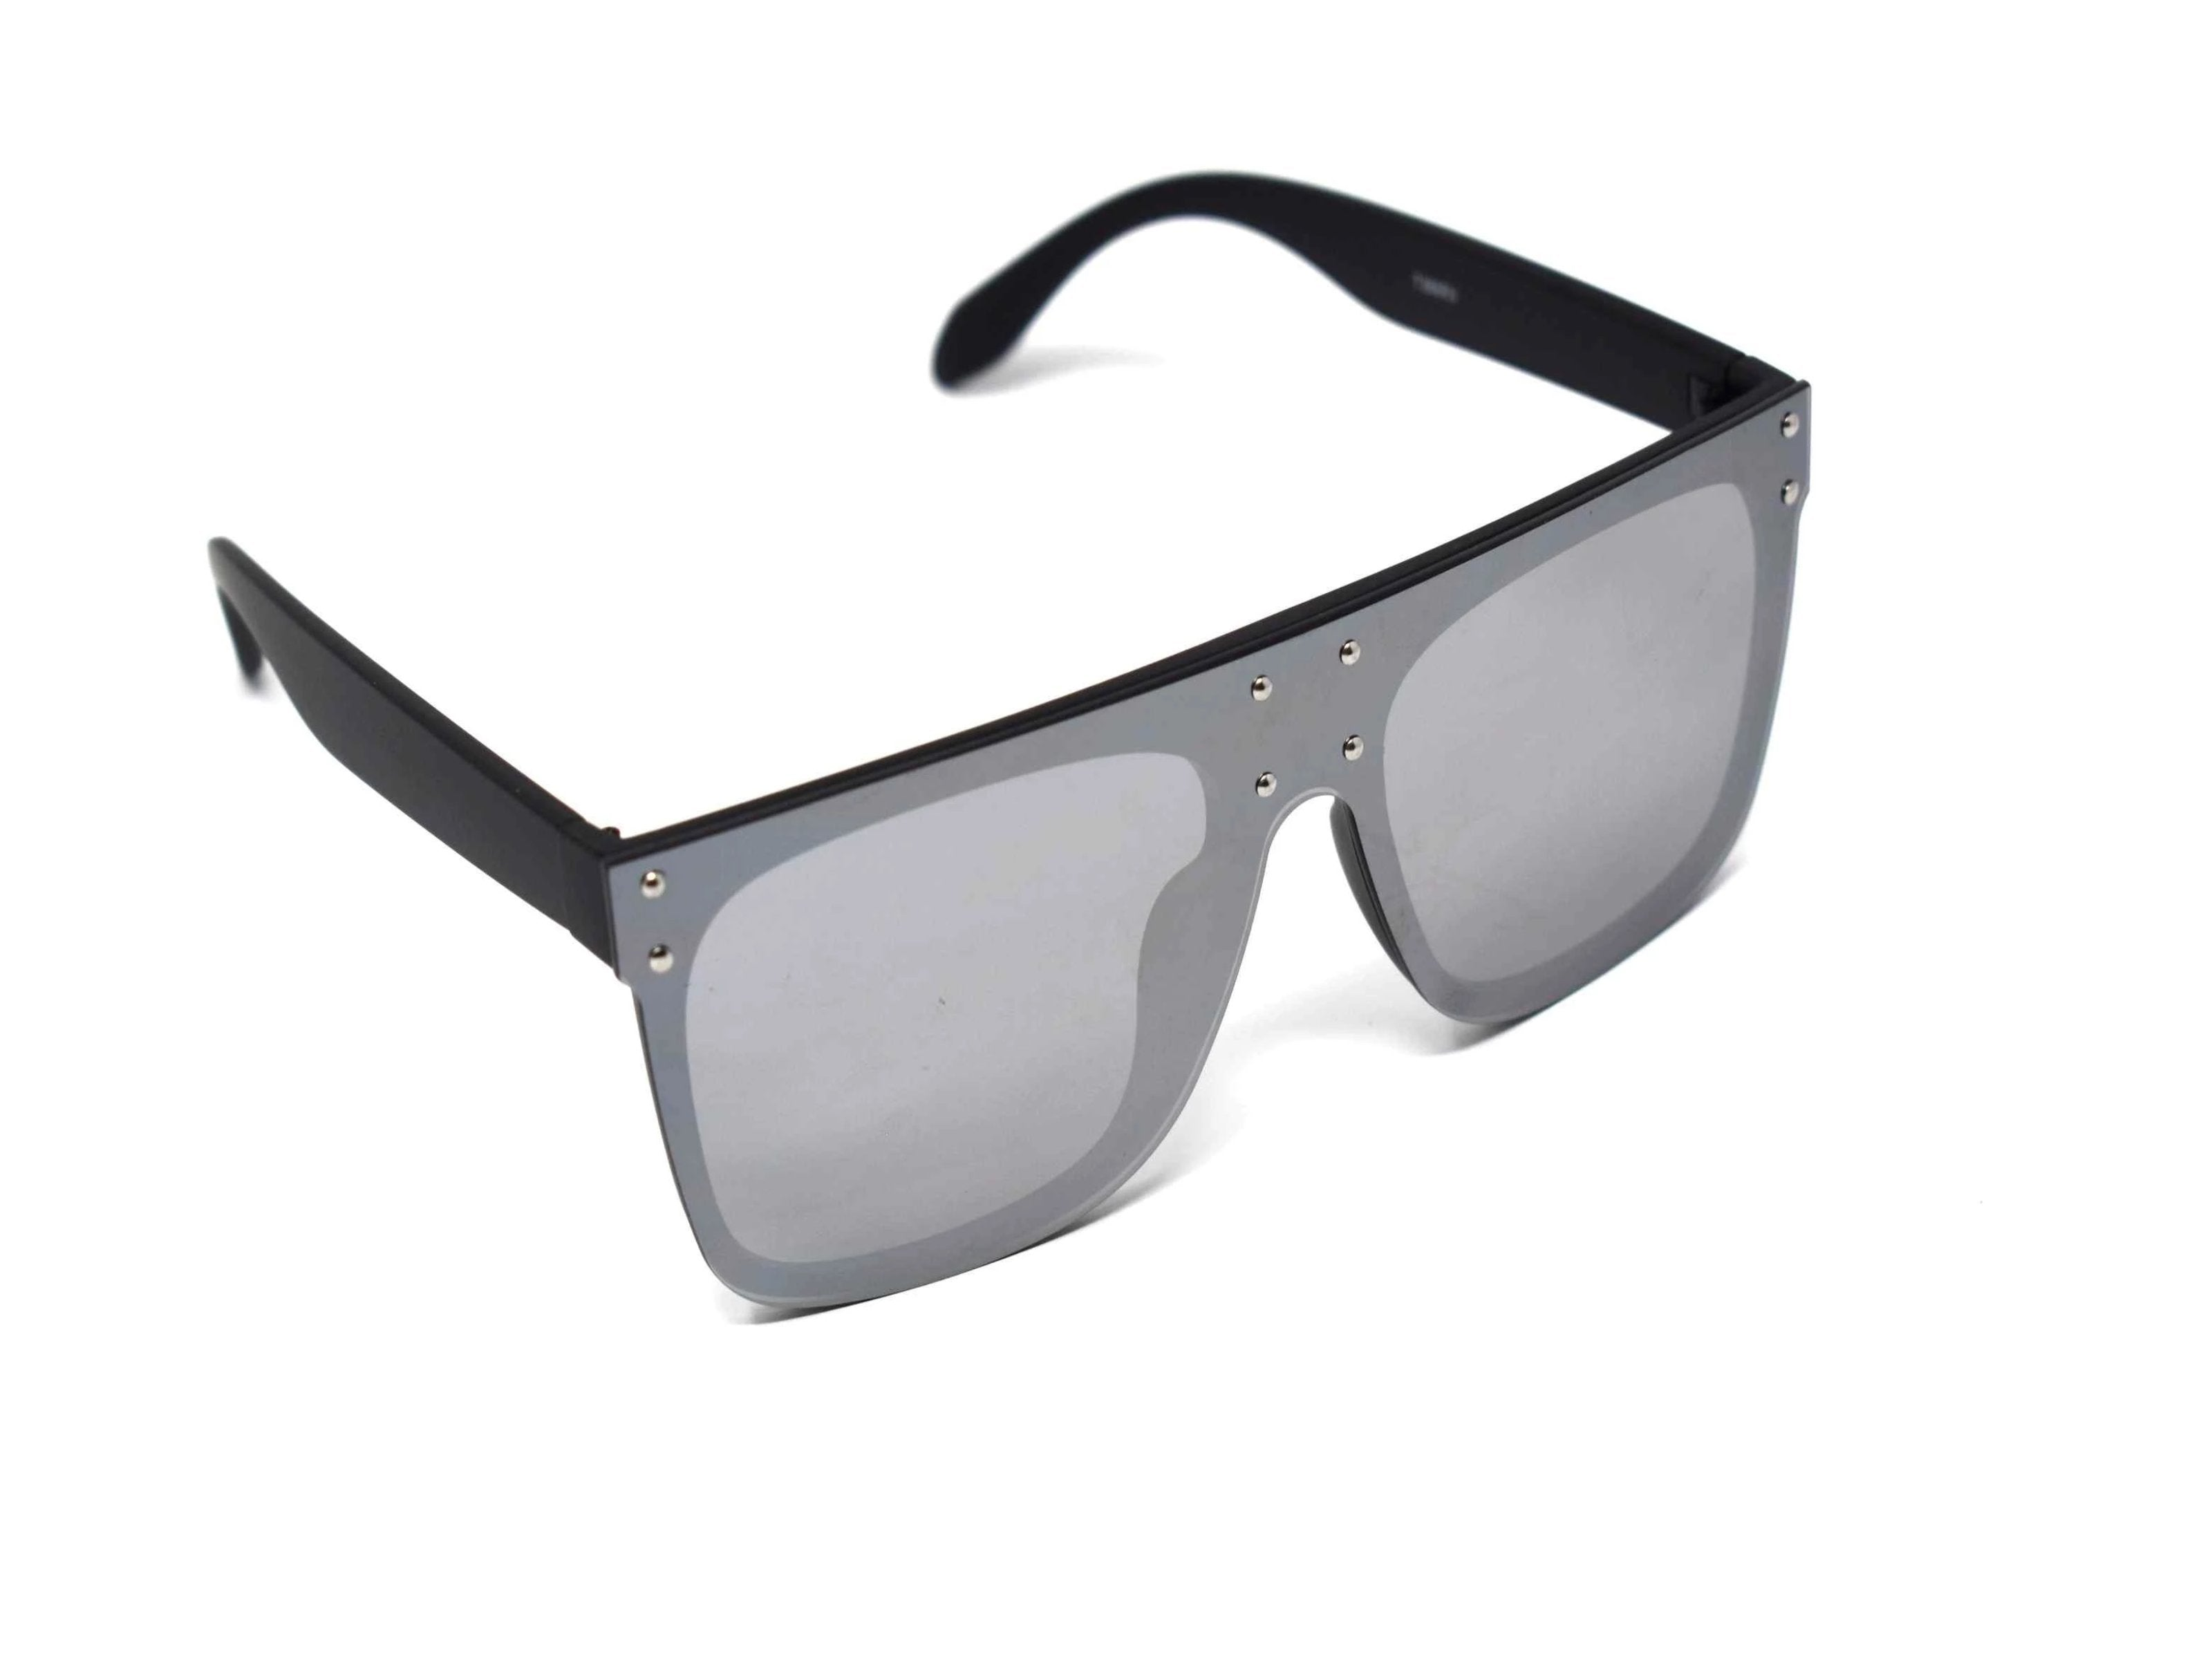 Fashion forward and edgy is what you call our shield shaped Rosa black framed silver mirrored Sunglasses.